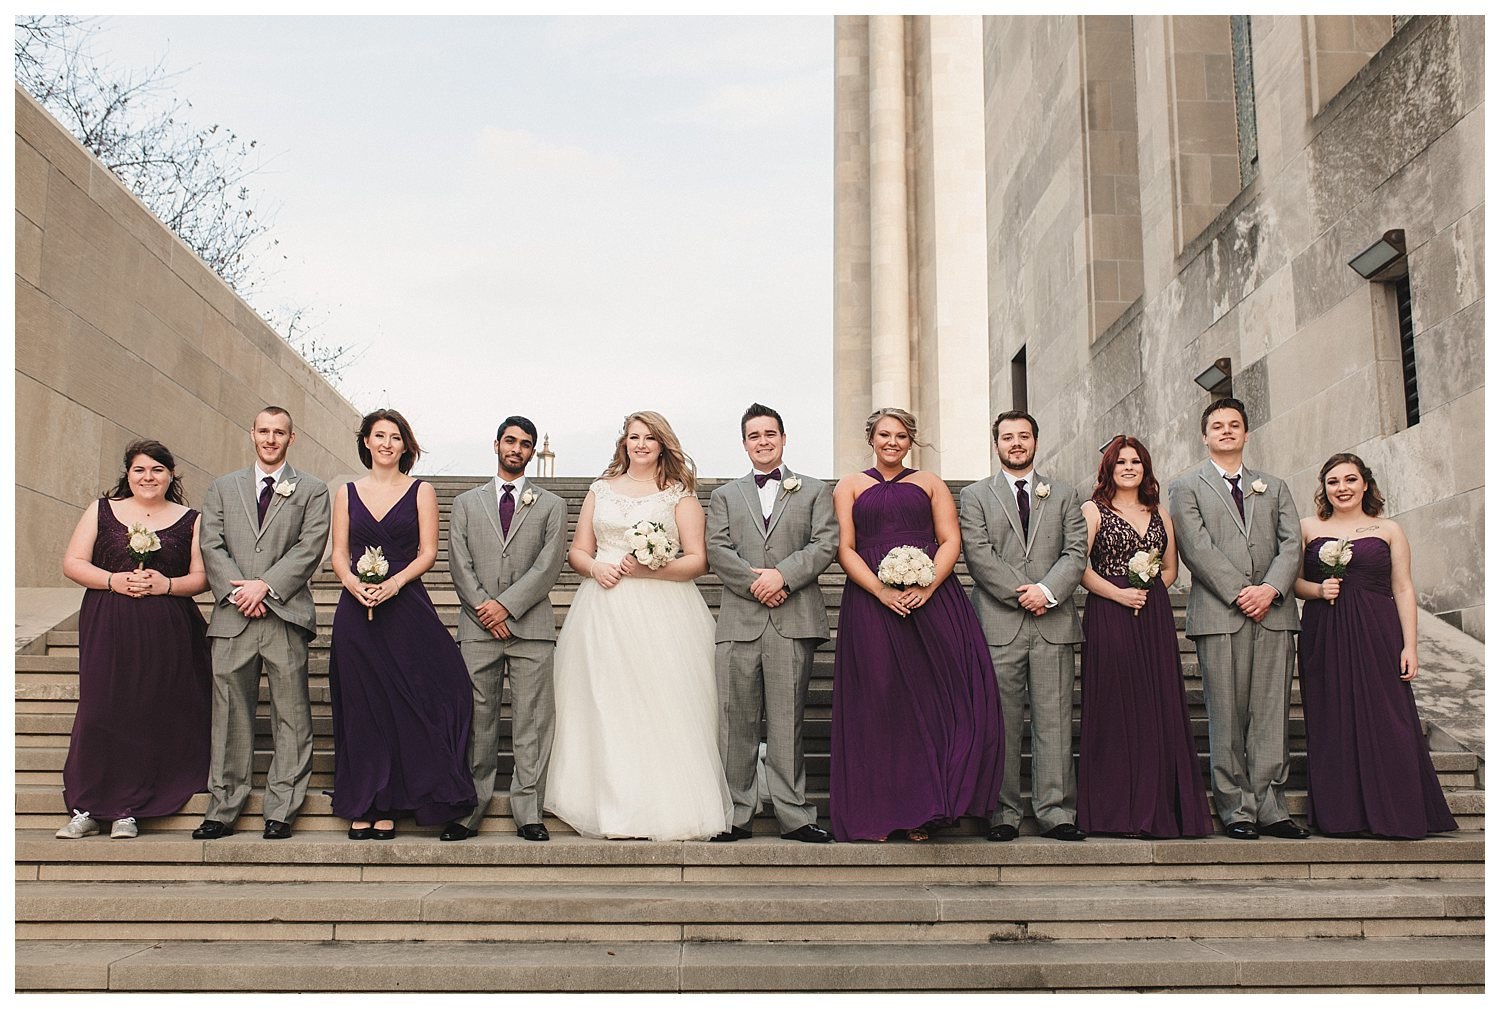 Kelsey_Diane_Photography_Loose_Mansion_Wedding_Photography_Kansas_City_Victor_Lyndsay_0359.jpg